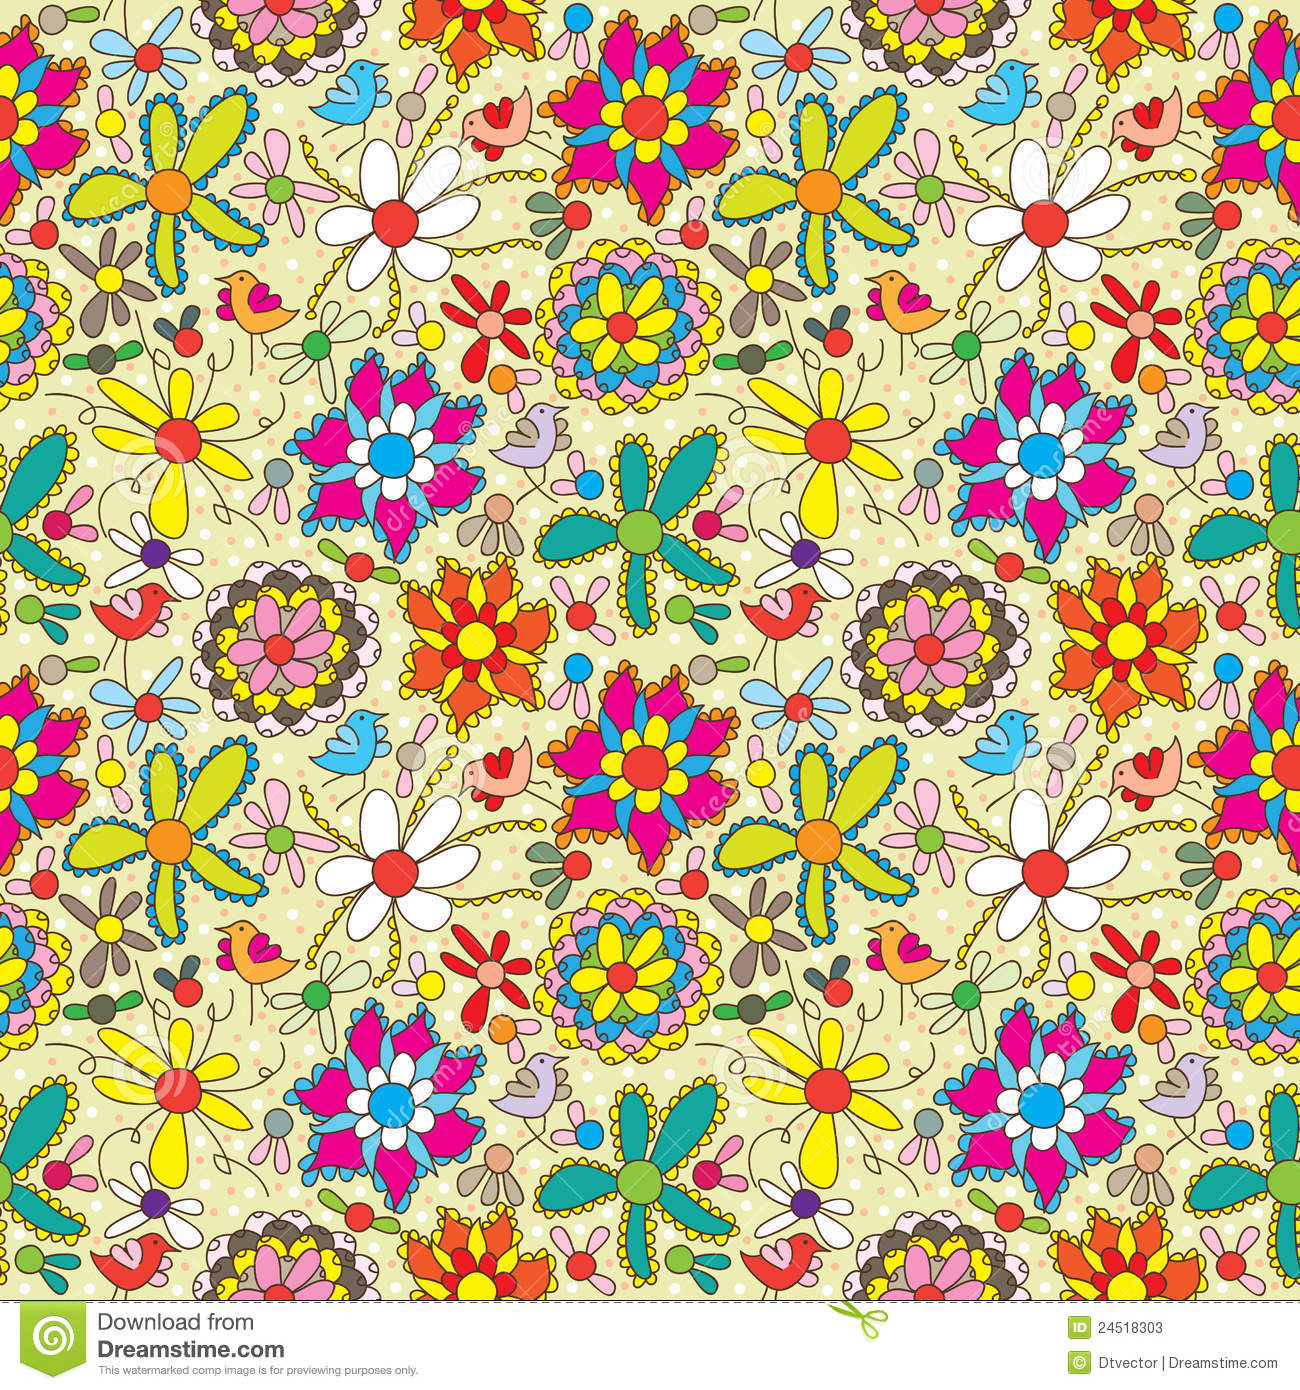 colorful floral background patterns - photo #19